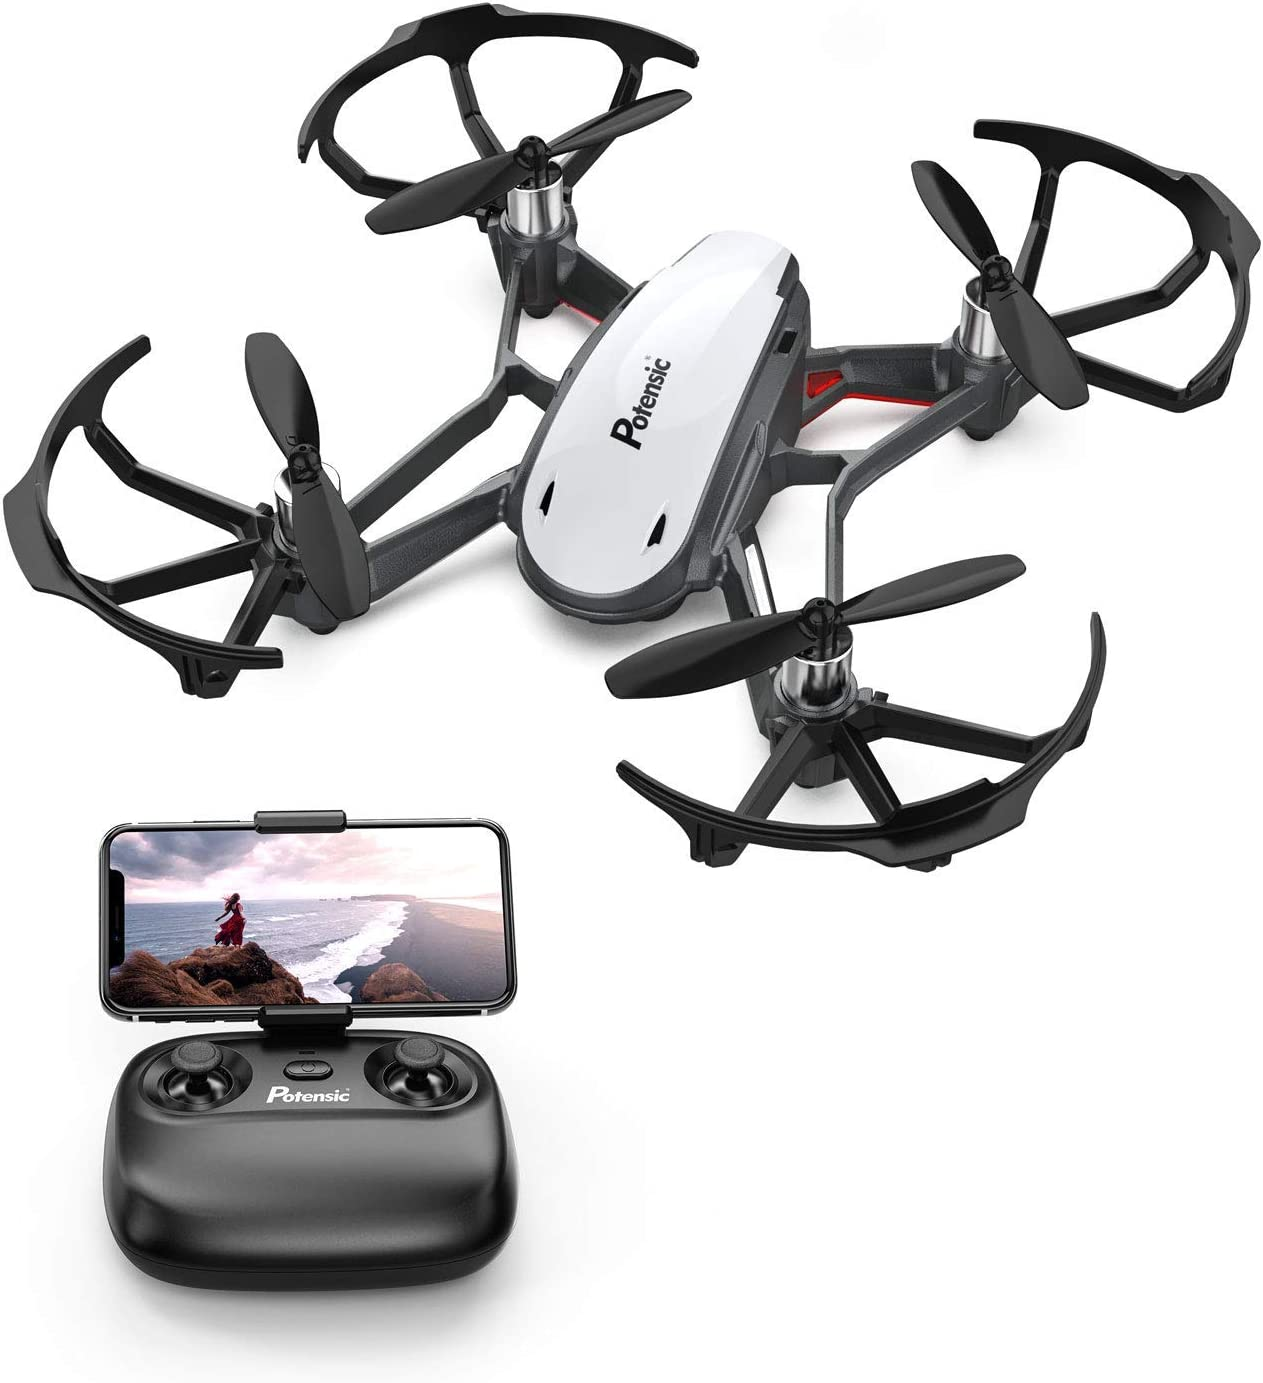 Potensic D20 is at #4 for best drones under 50 dollars